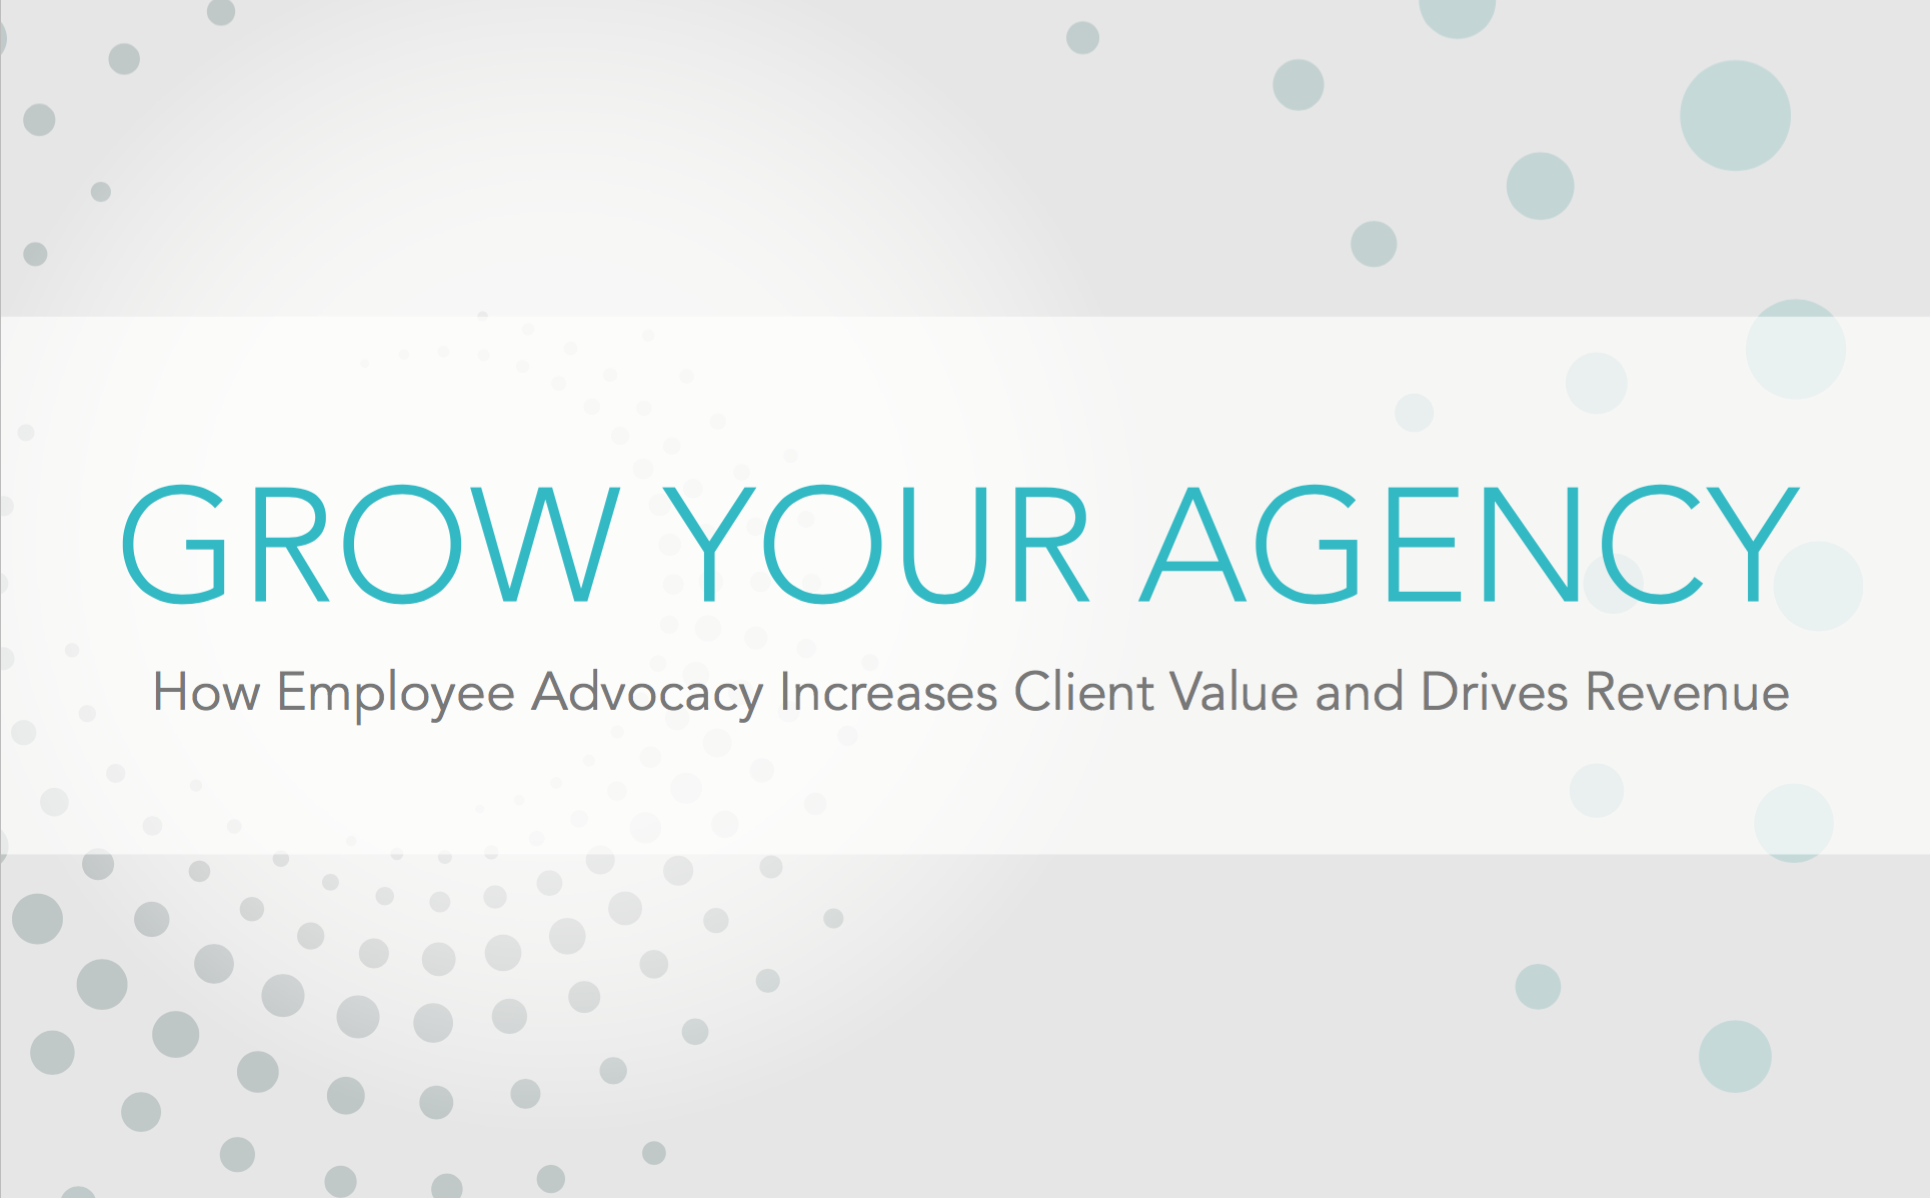 Grow Your Agency: How Employee Advocacy Increases Client Value and Drives Revenue